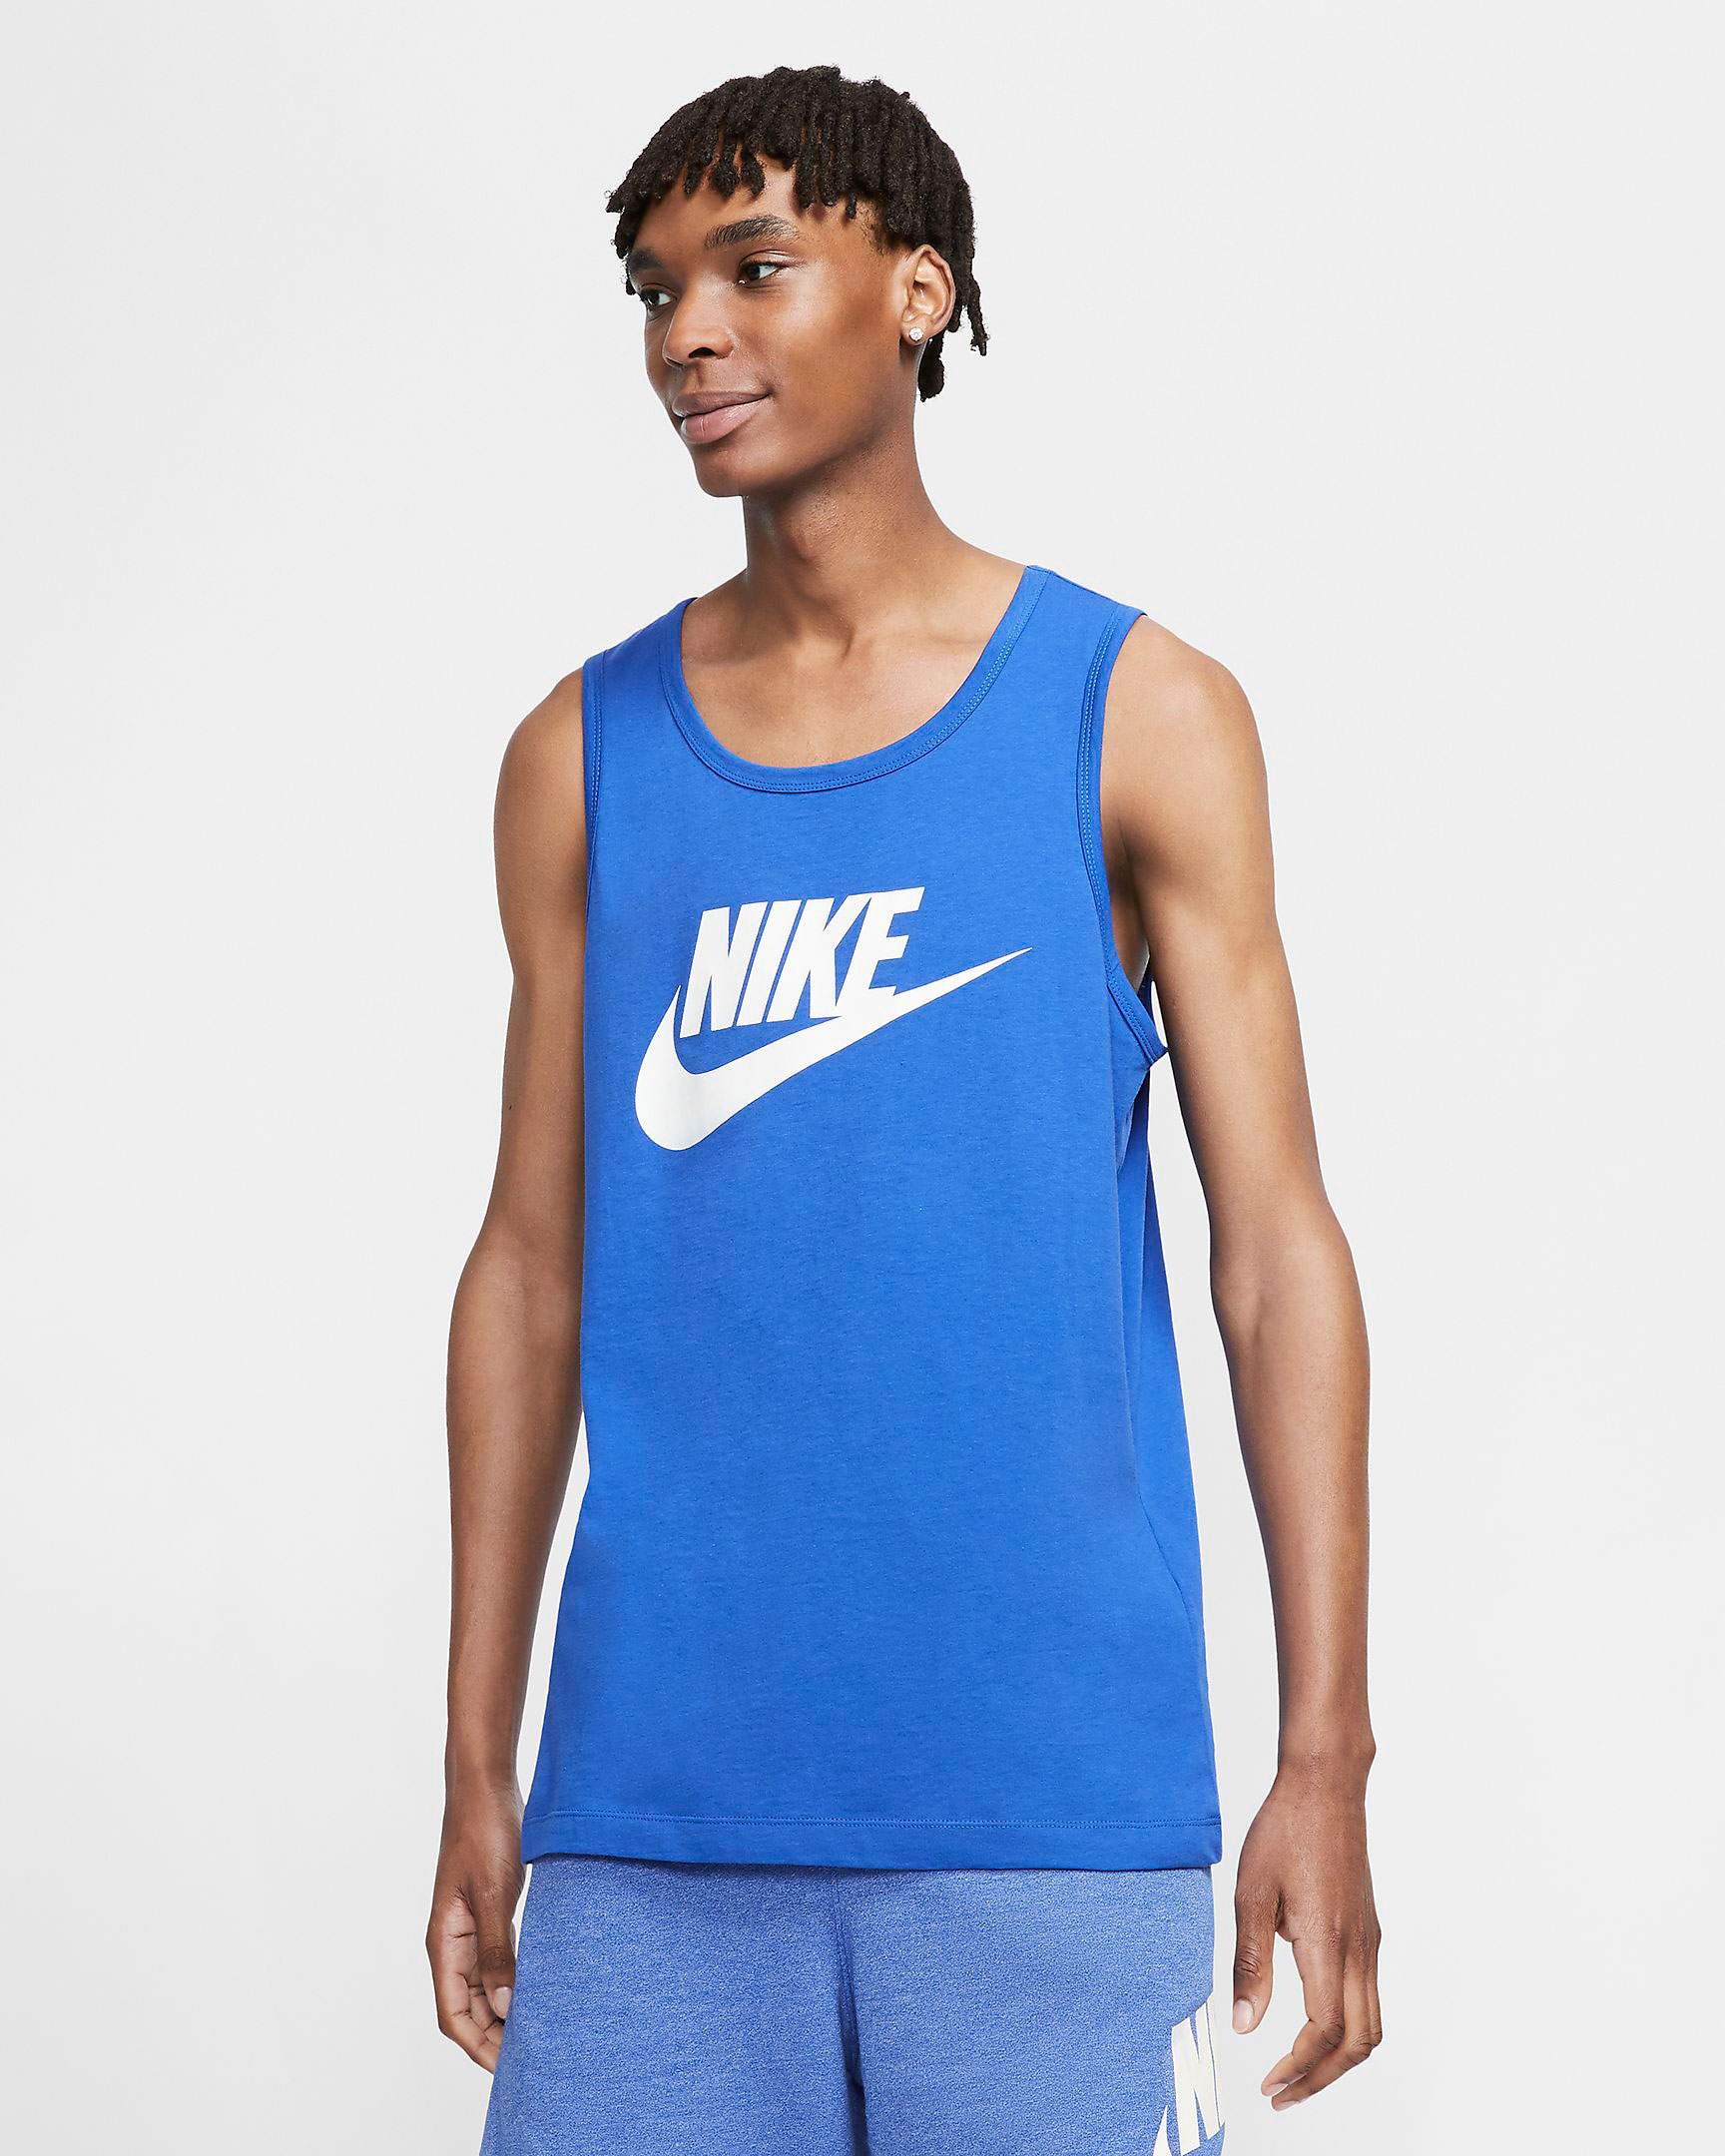 jordan-1-game-royal-toe-nike-tank-top-match